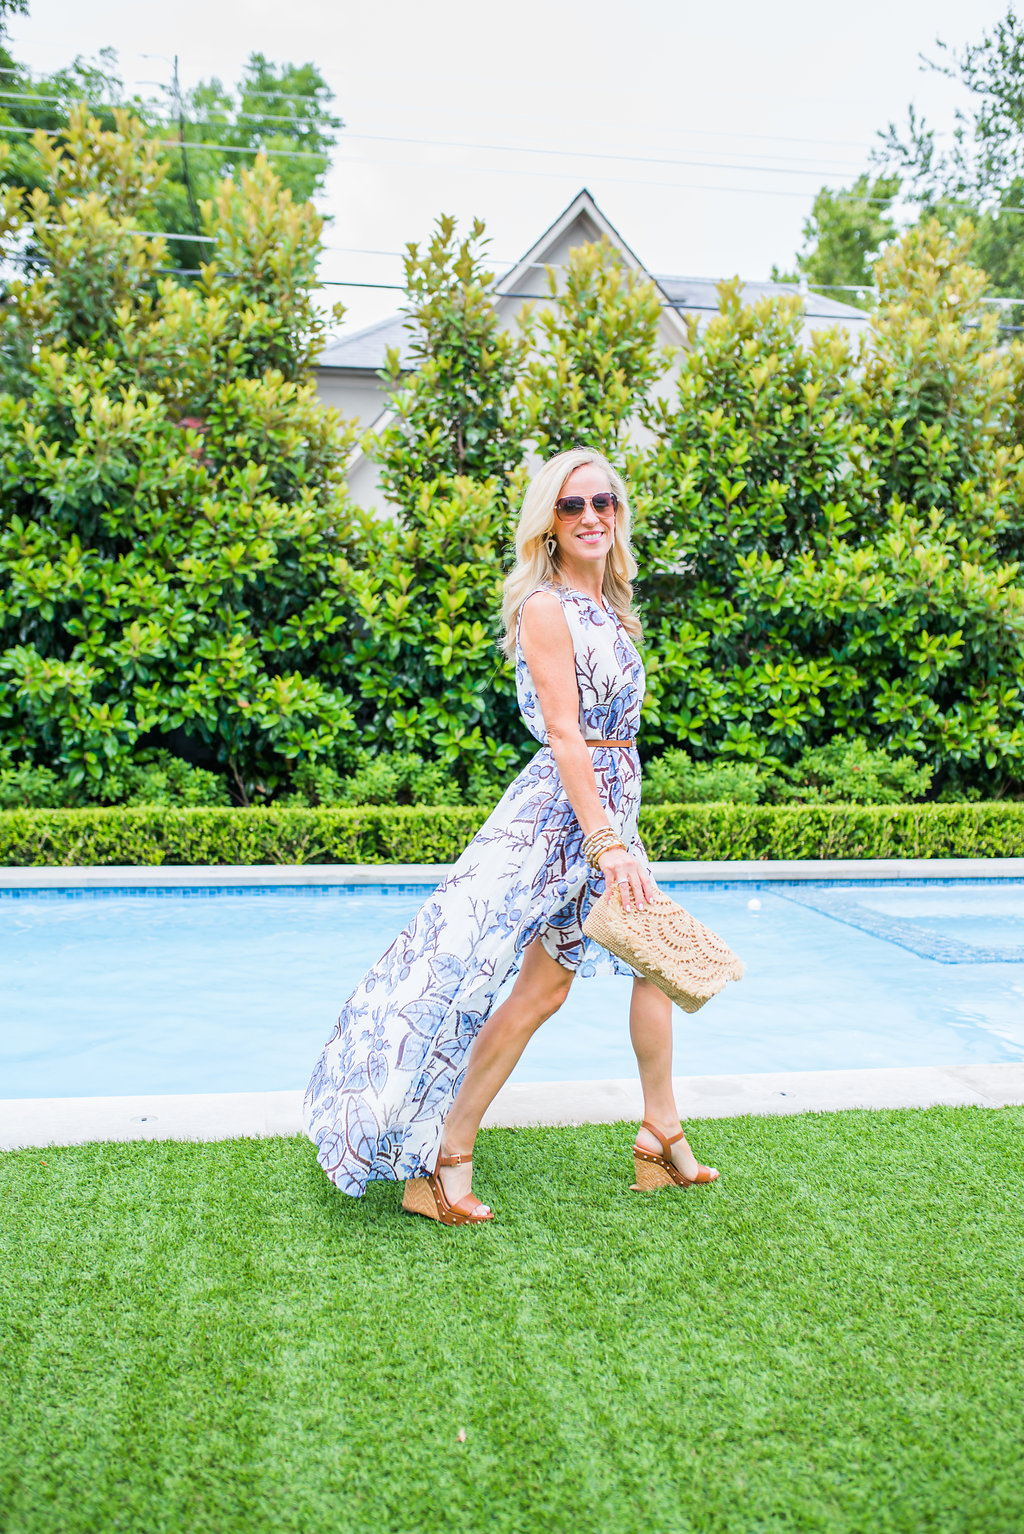 Double Duty: How to Wear A Dress as Cover Up